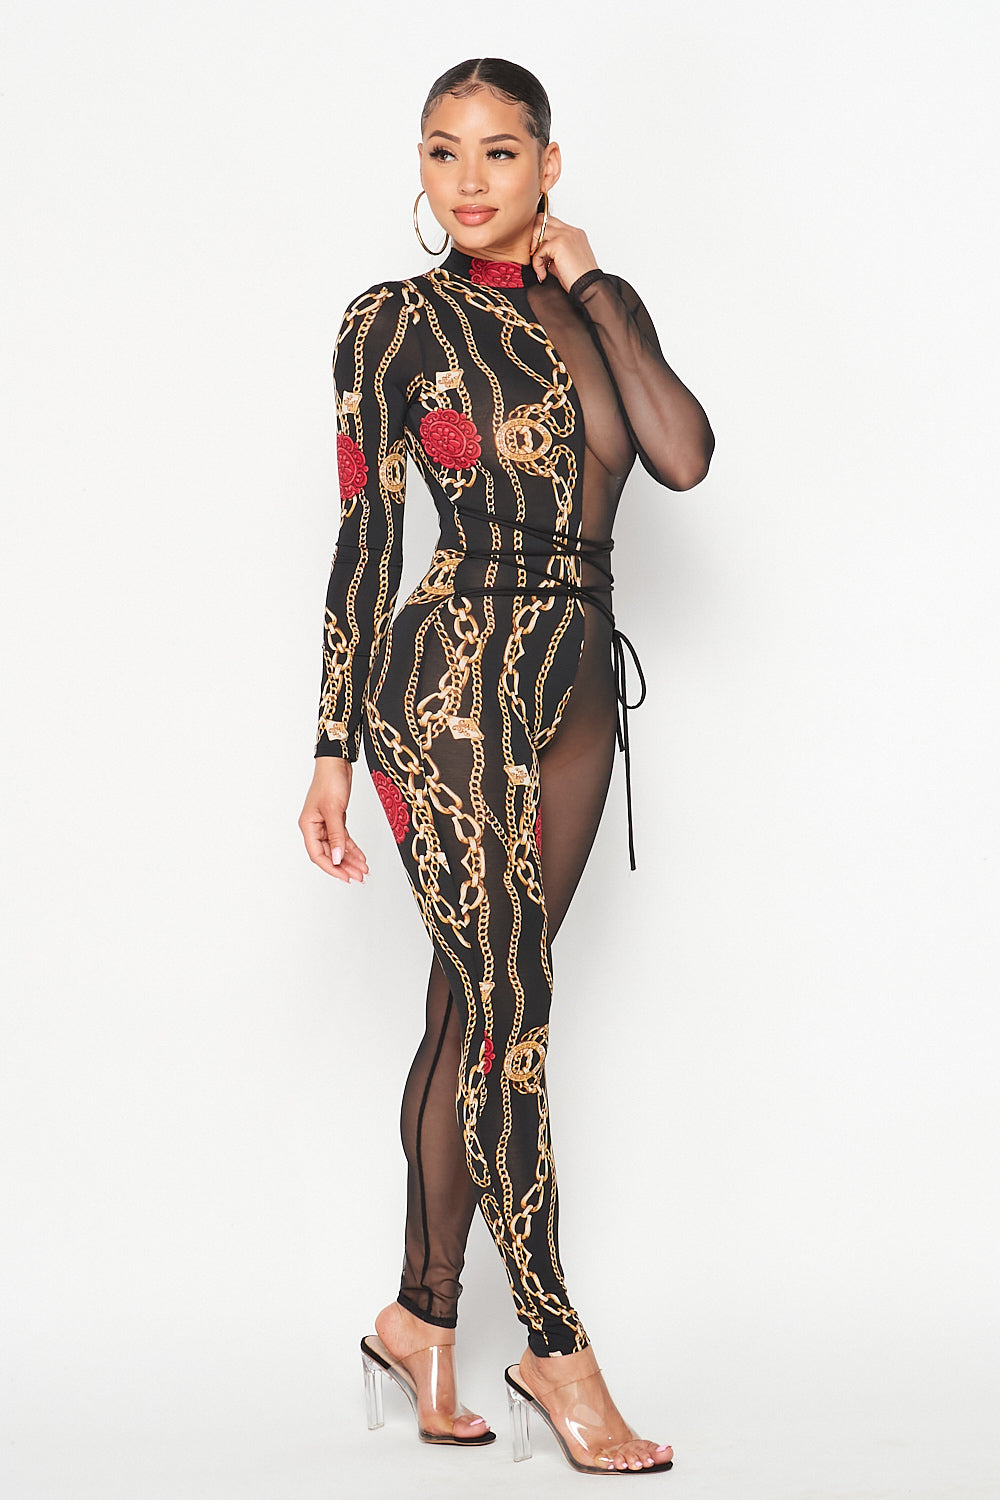 Half Mesh Half Print Mock Neck Chained Down Jumpsuit - Fashion House USA